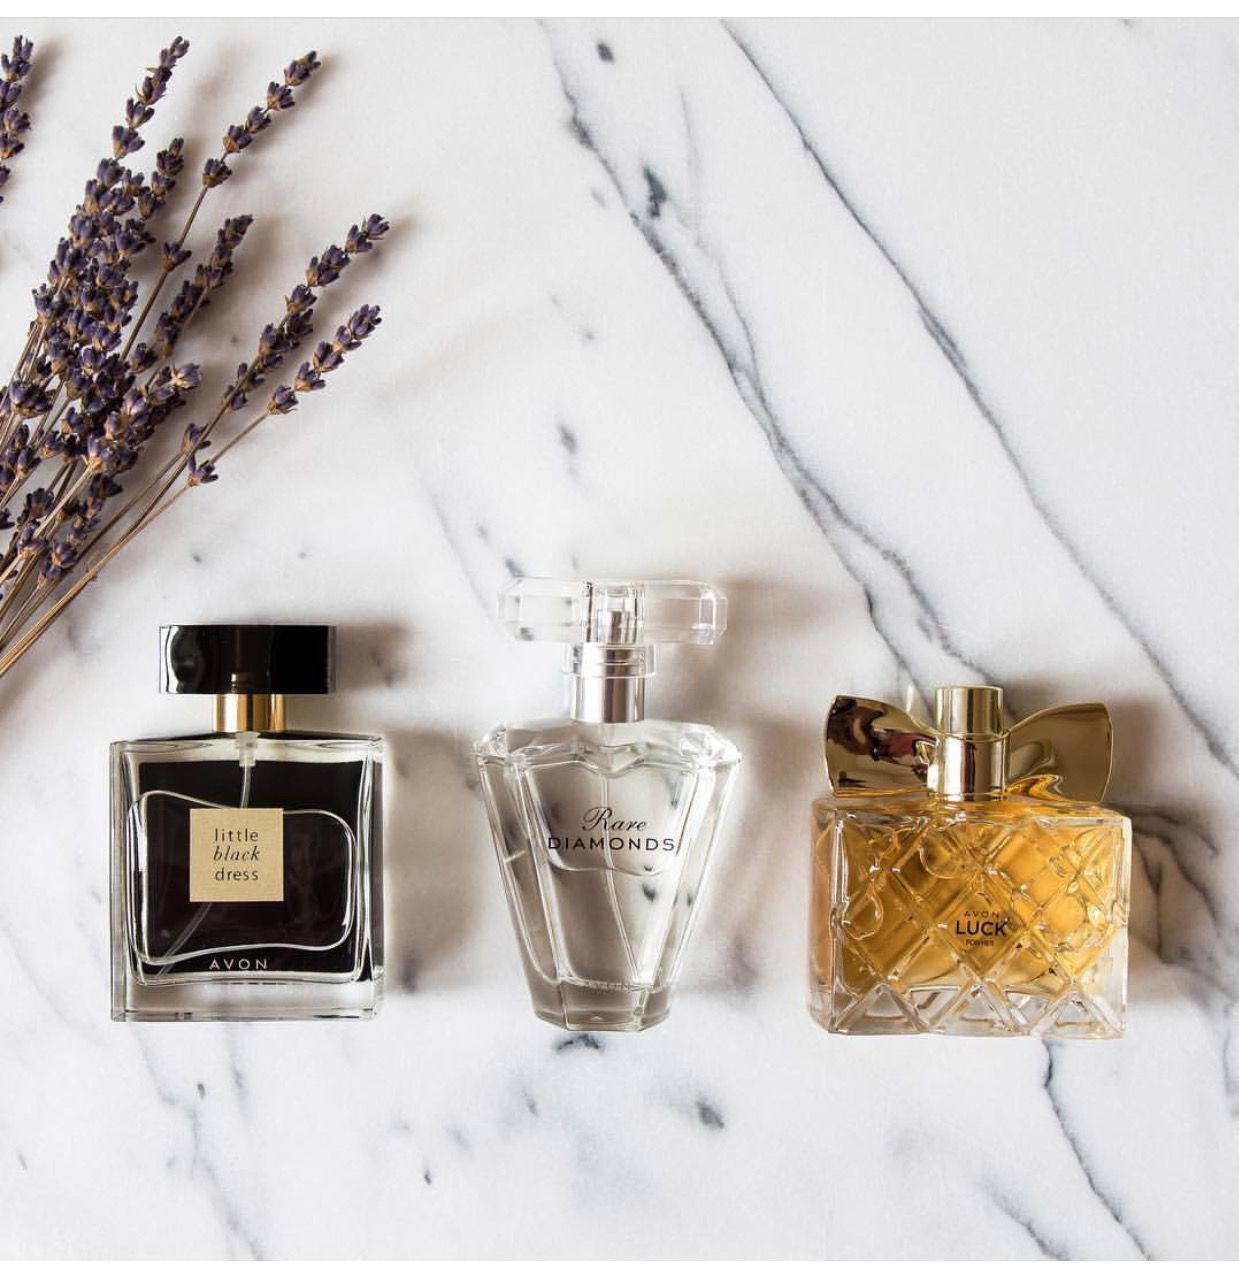 Perfumes smell great at Avon